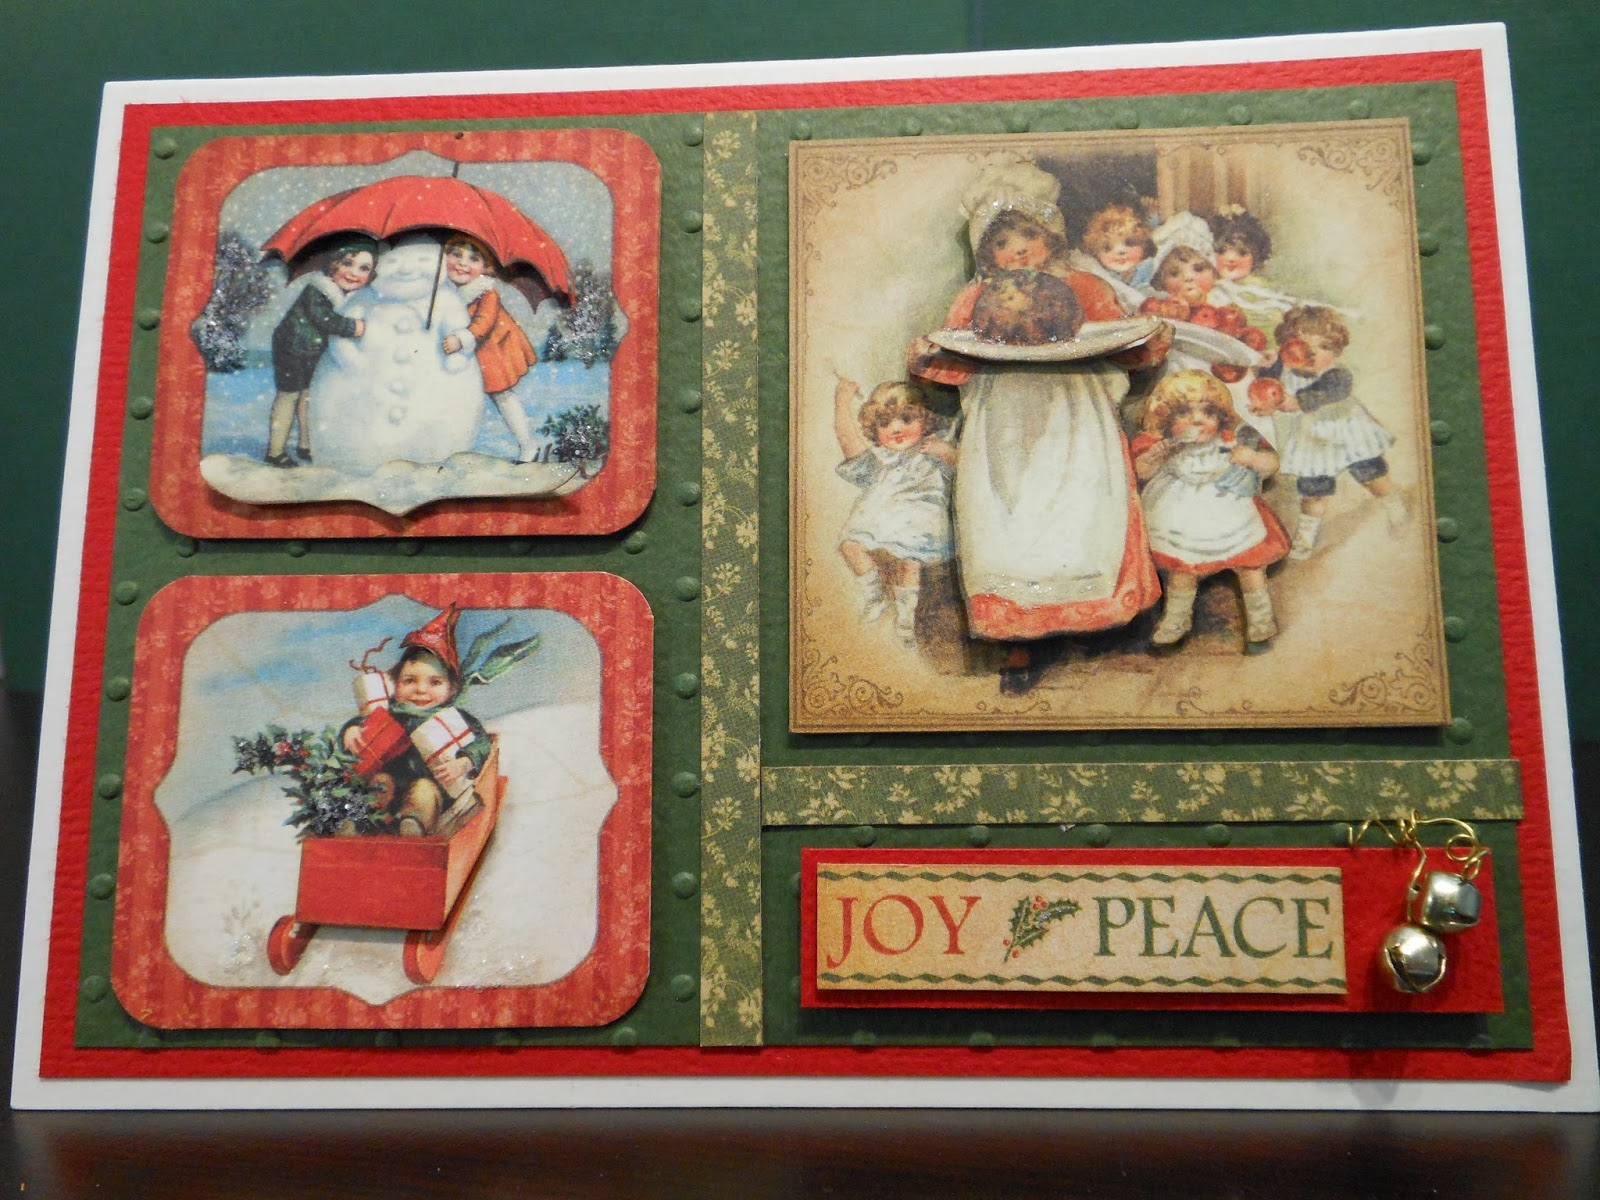 Madeline S Memories Vintage Christmas Cards: G45 Vintage Christmas Cards, With Bonnie